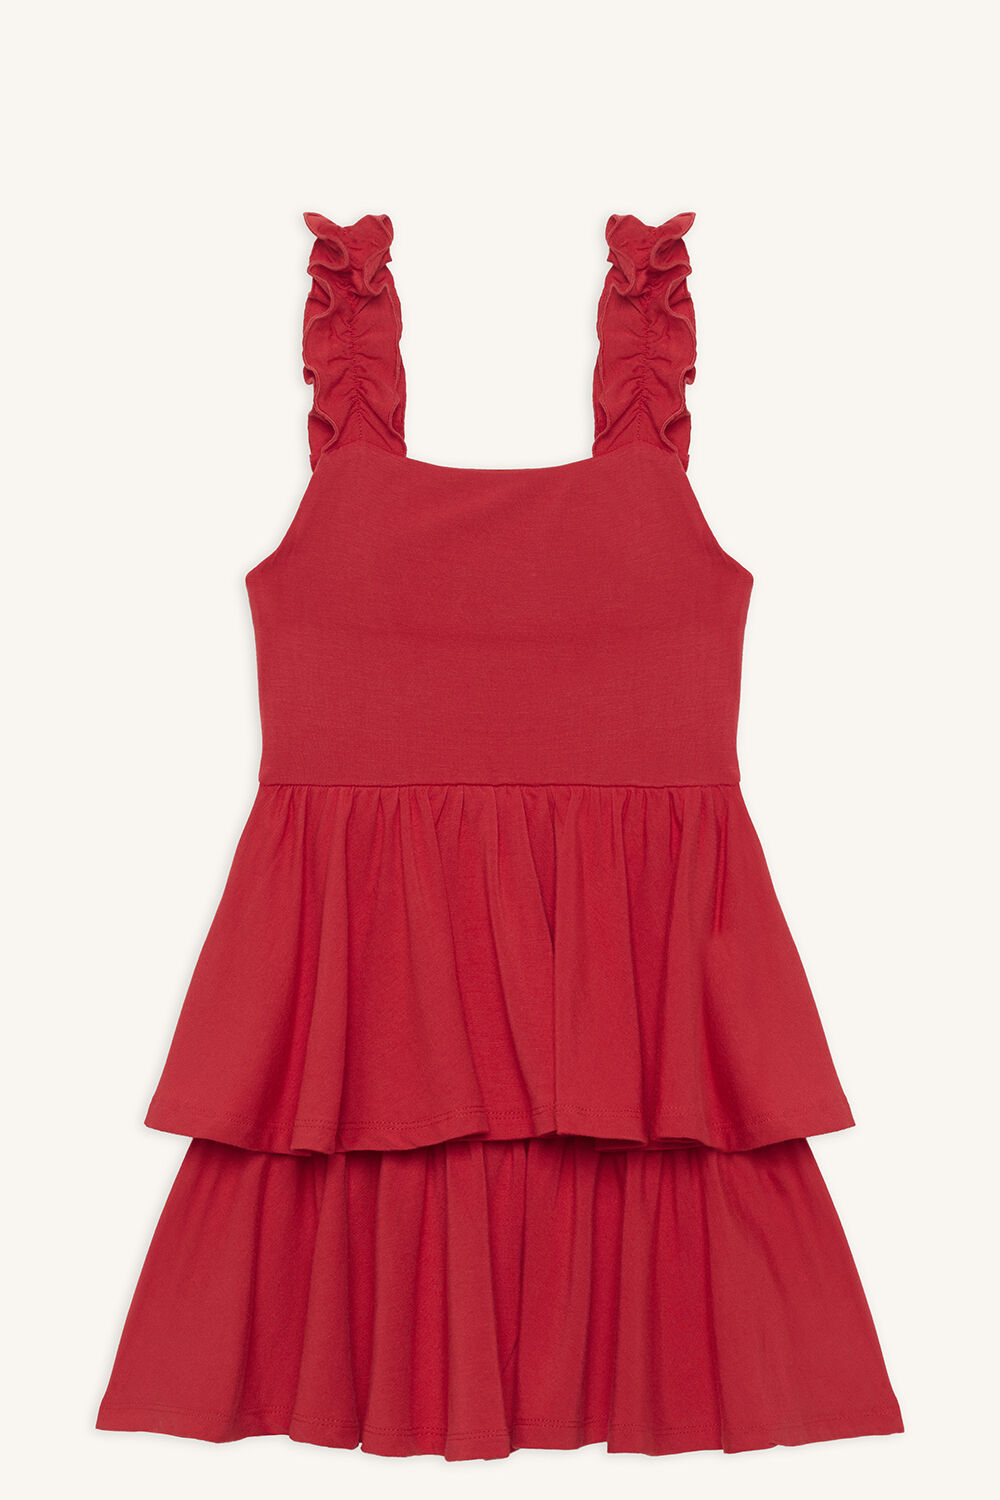 LIYA LAYER DRESS in colour LOLLIPOP